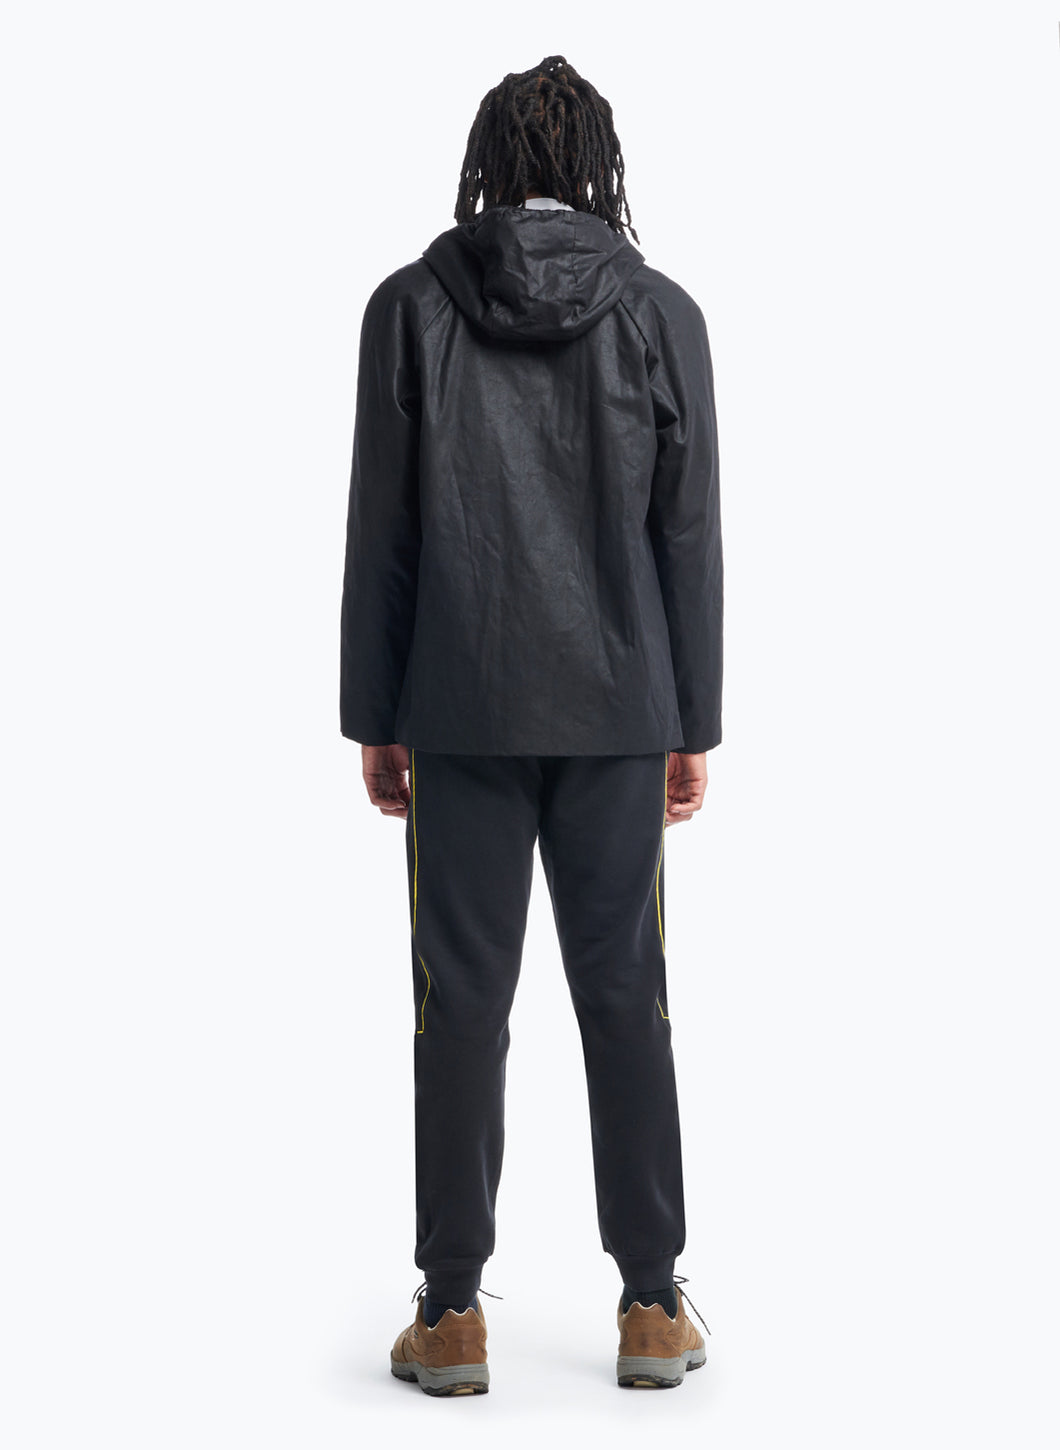 Raglan Sleeve Parka in Black Waxed Cotton Twill